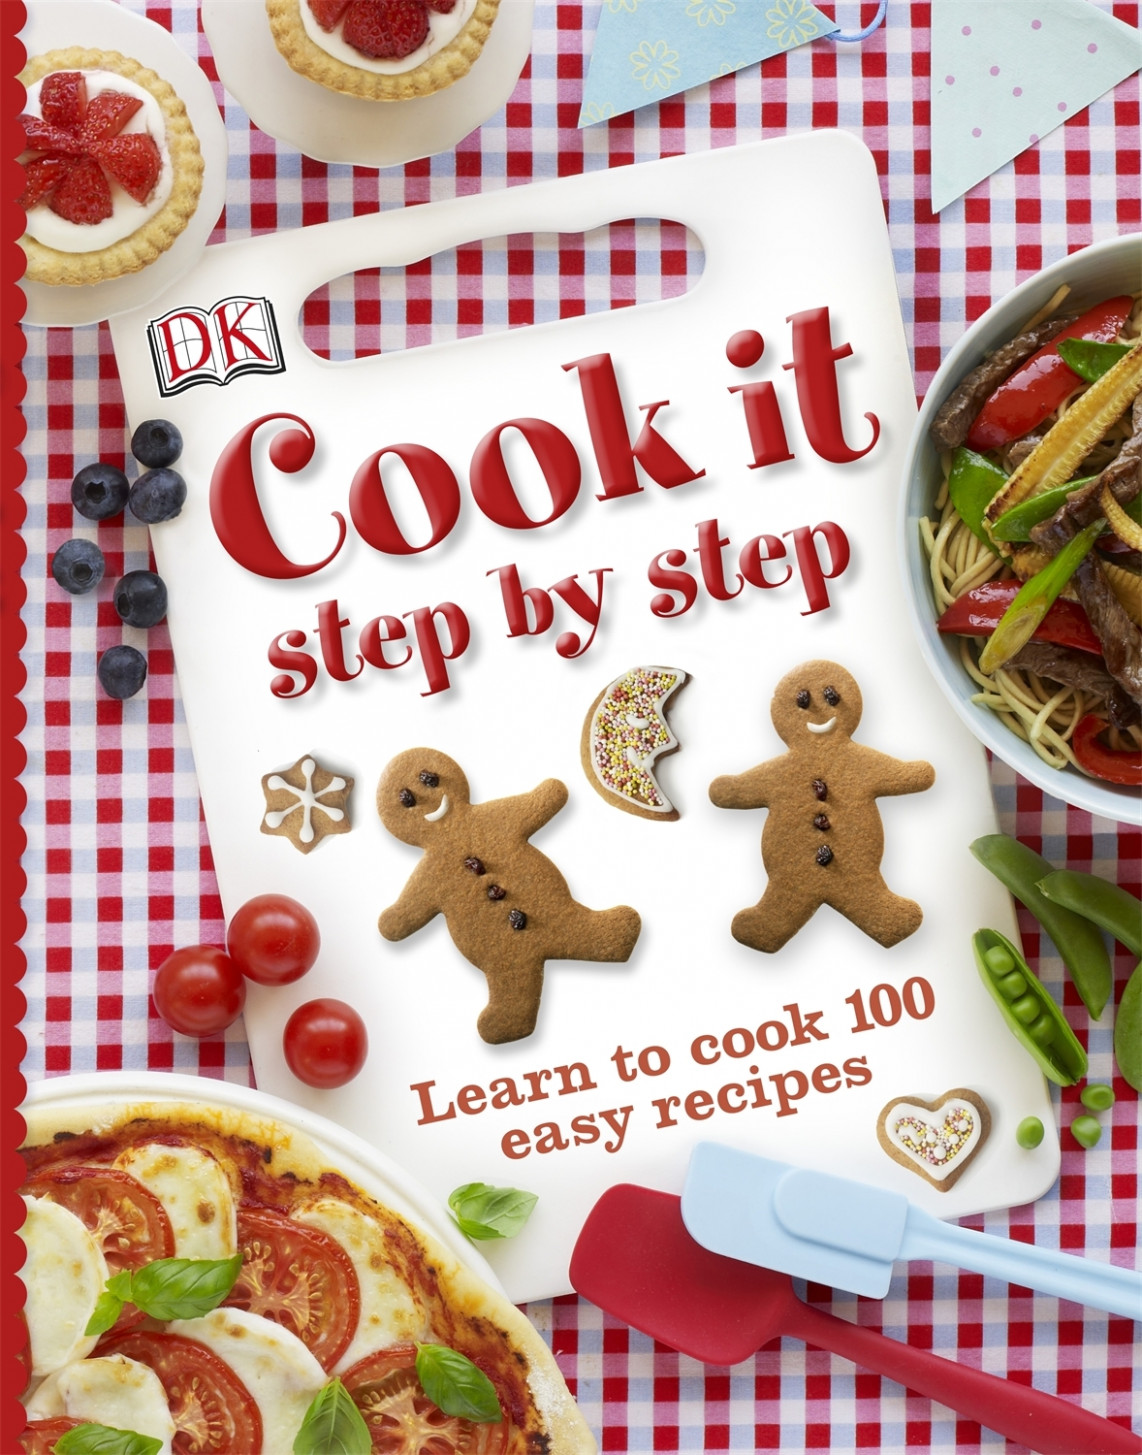 Cook It Step by Step - Learn to cook 100 easy recipes